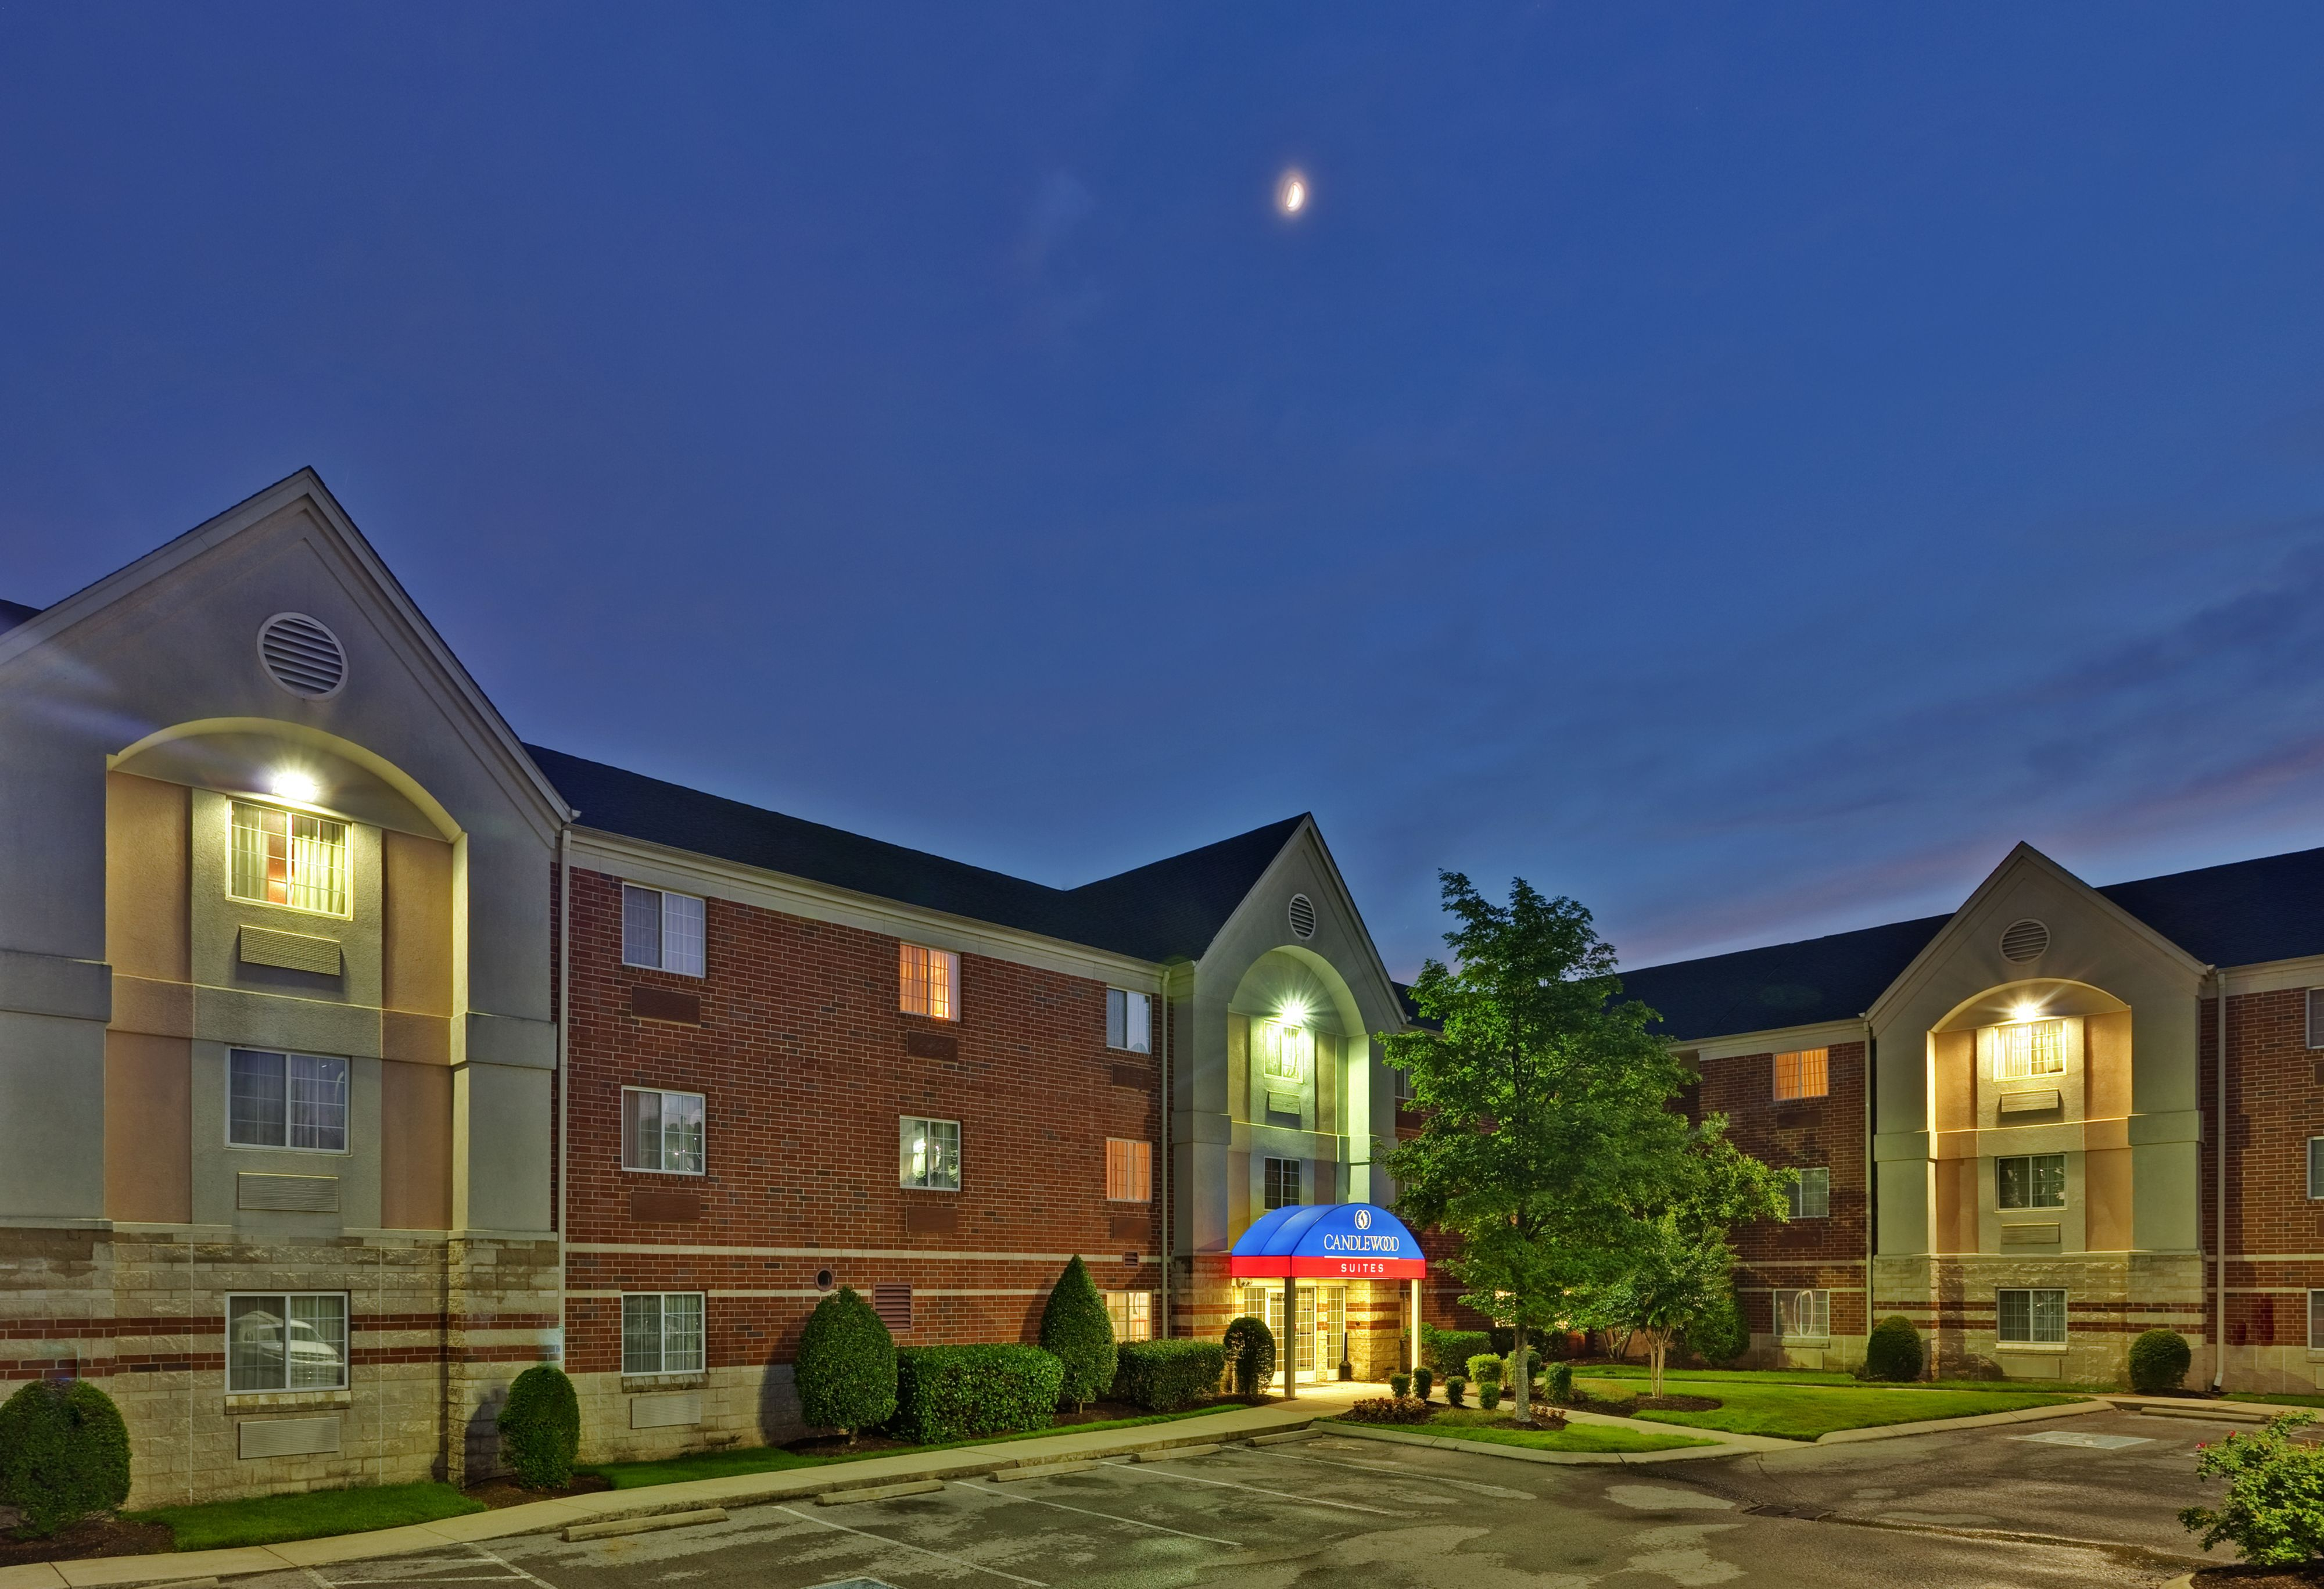 Candlewood Suites Mooresville Lake Norman Nc Mooresville North Carolina Nc